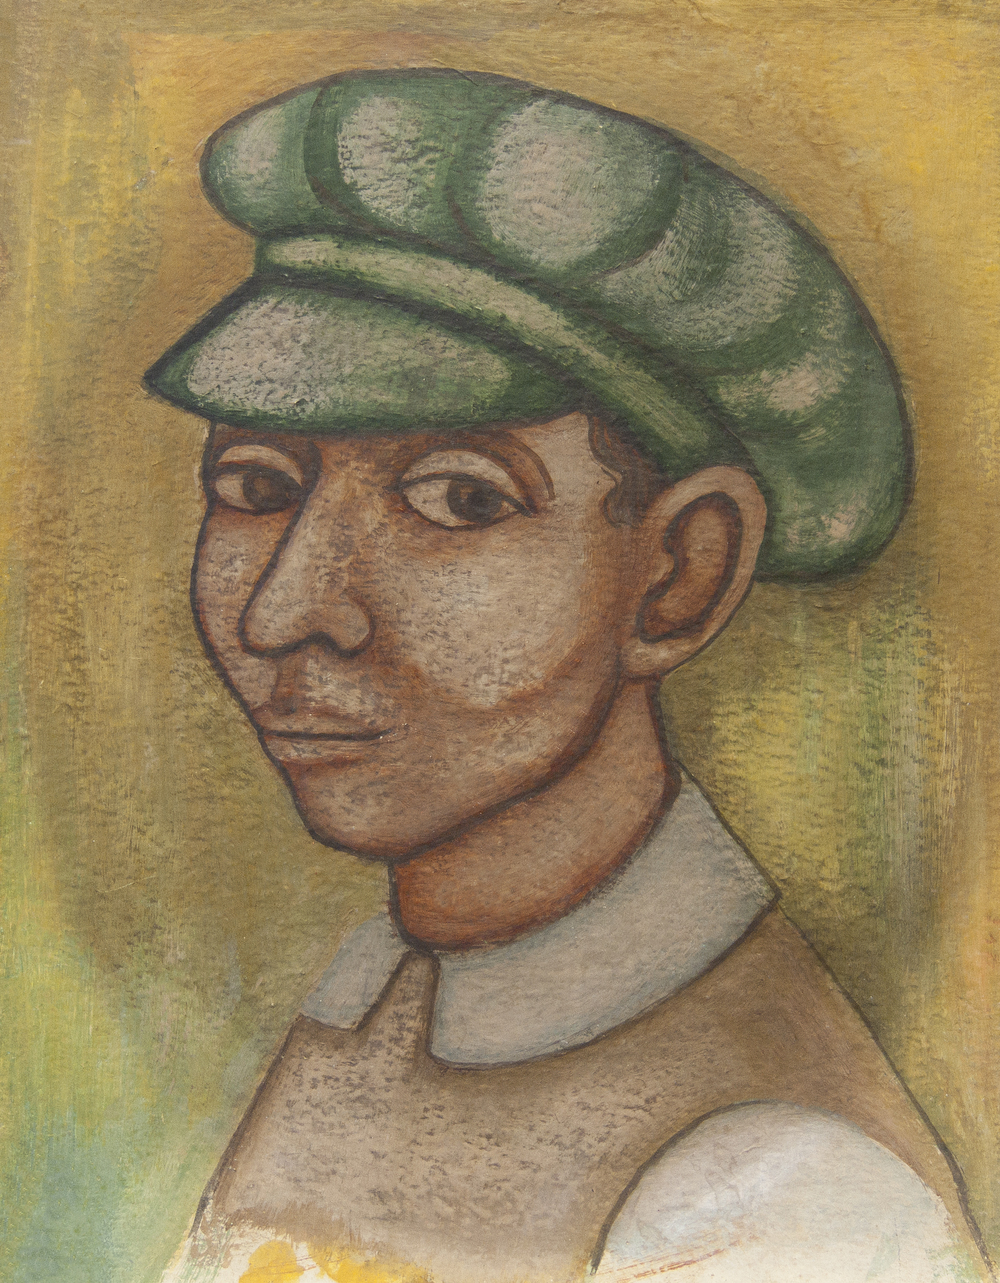 Untitled (Man in a Green Cap)